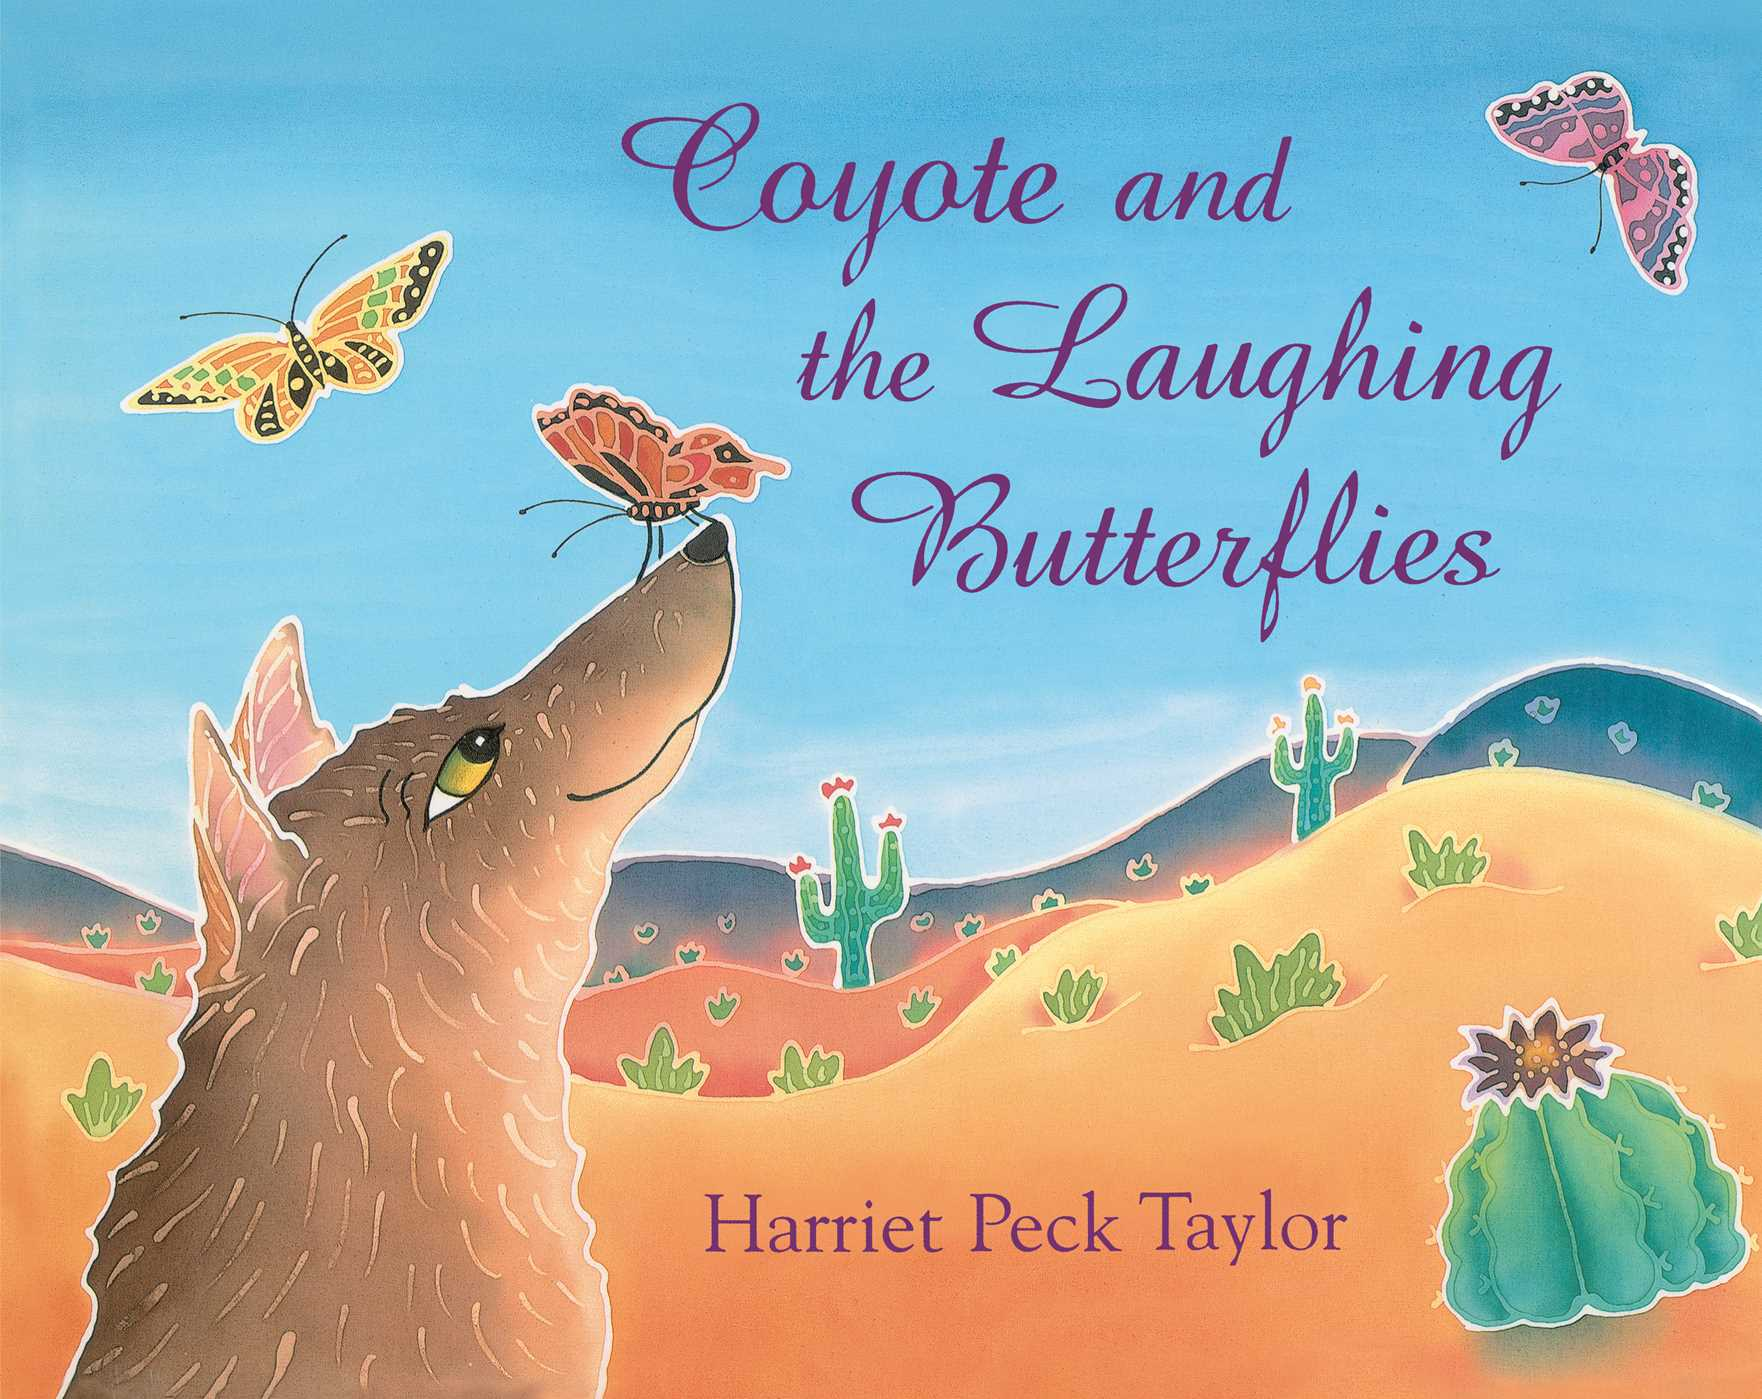 Coyote-and-the-laughing-butterflies-9780027888461_hr